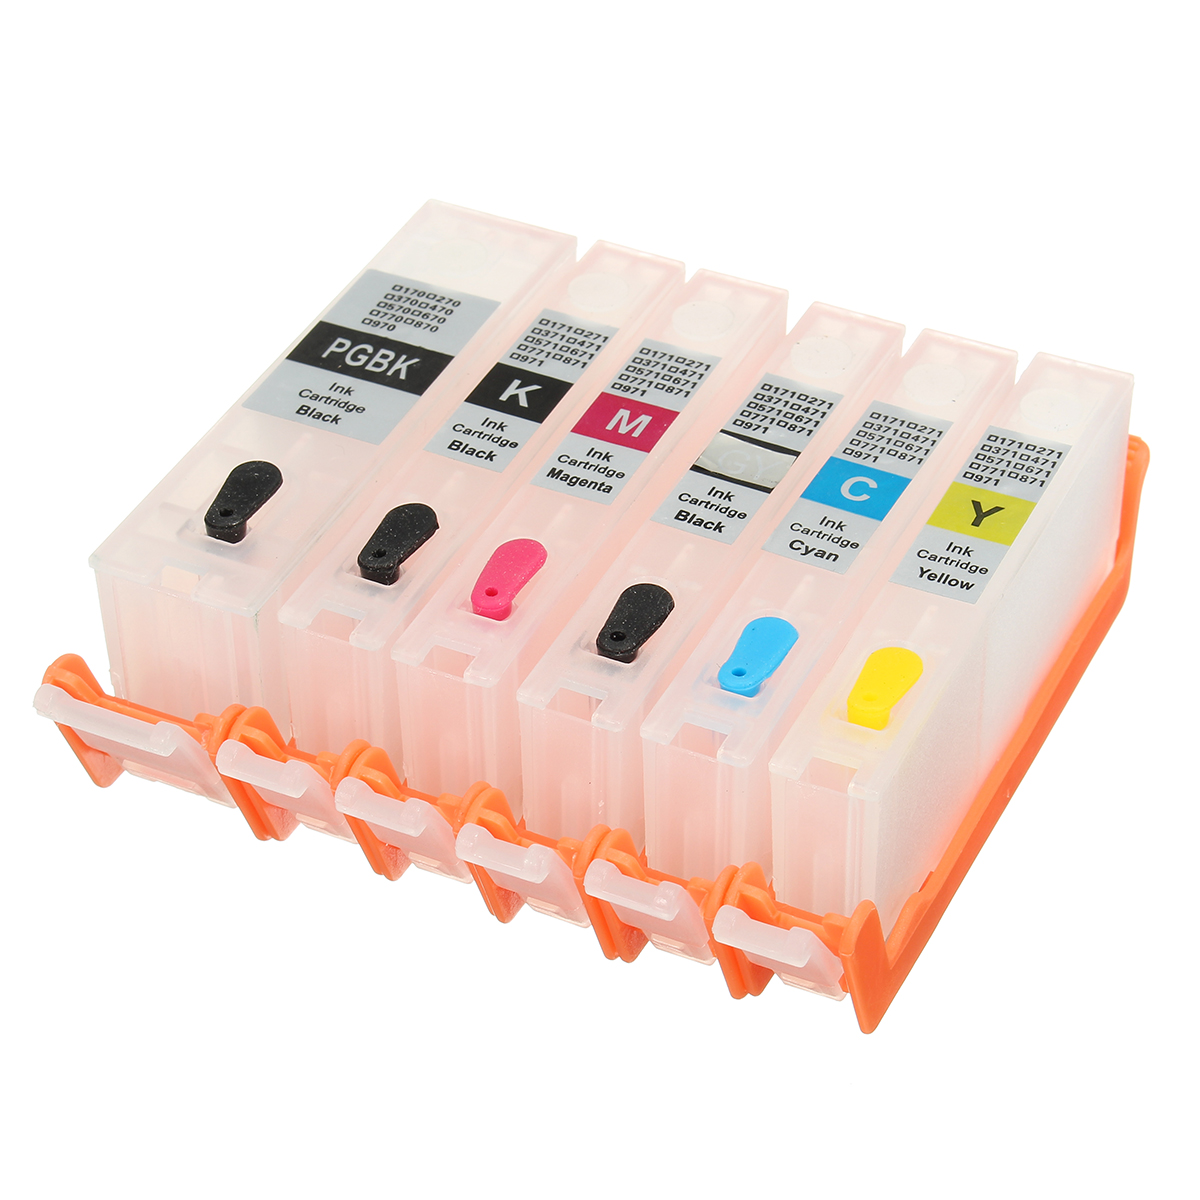 6pcs PGI-270 CLI-271 Refillable Ink Cartridge For MG7720 TS8020 TS9020